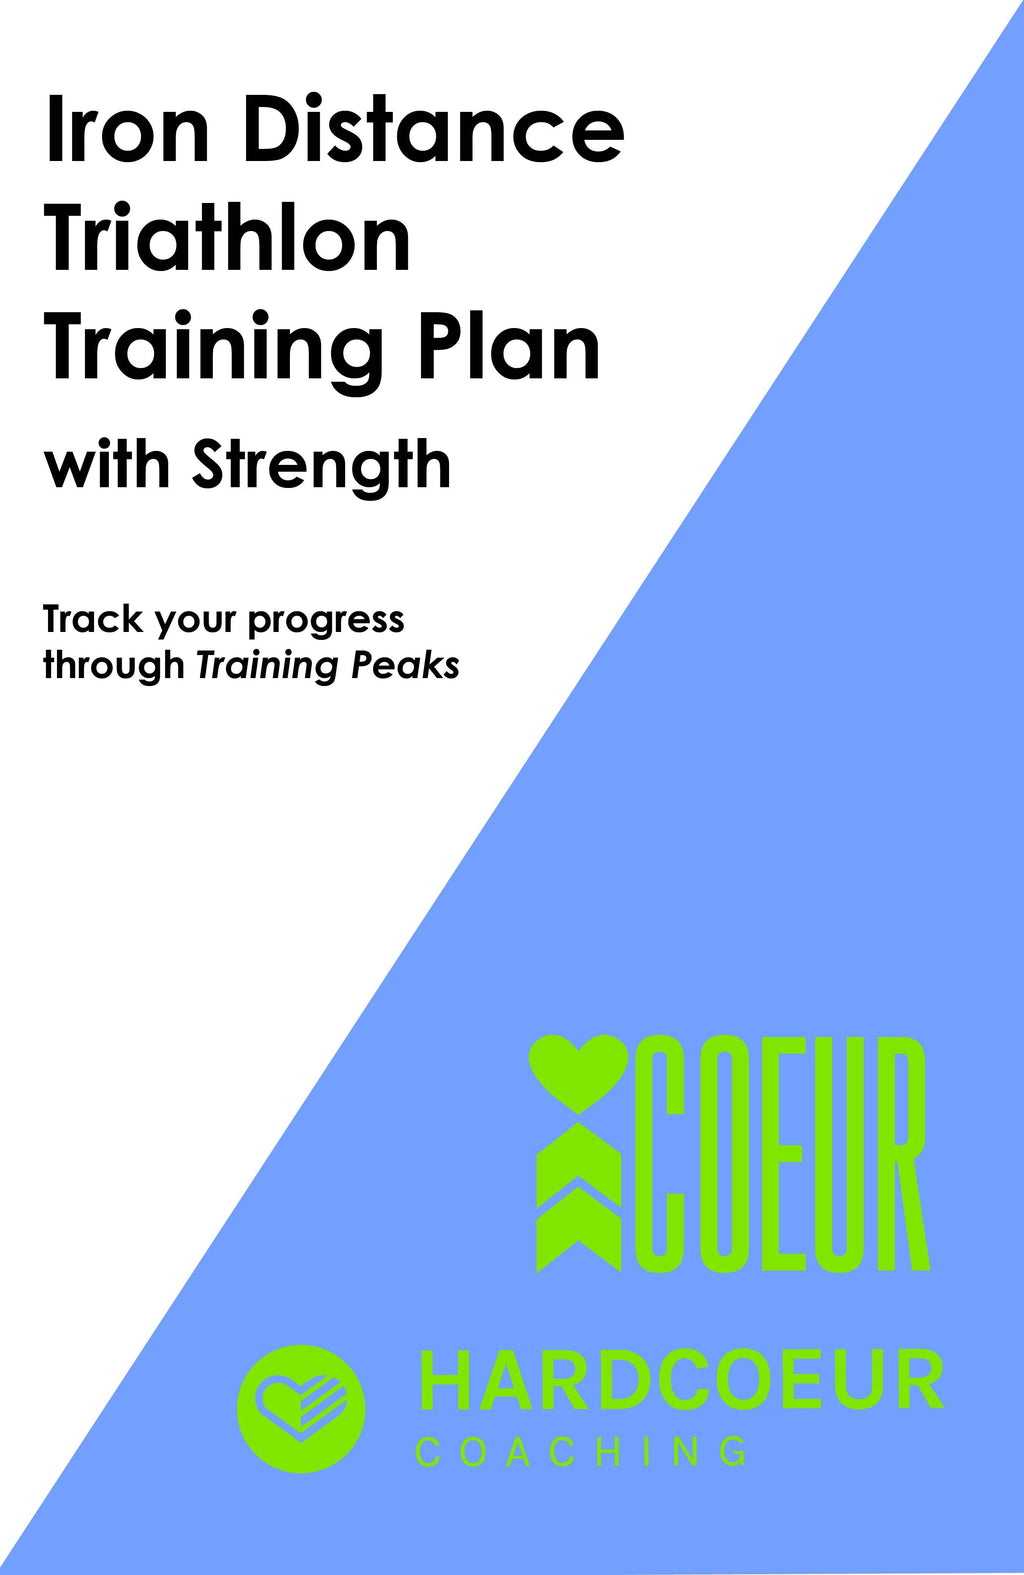 Coeur Sports Training Peaks Iron Distance Triathlon Training Plan with Strength: Women's 16 Week